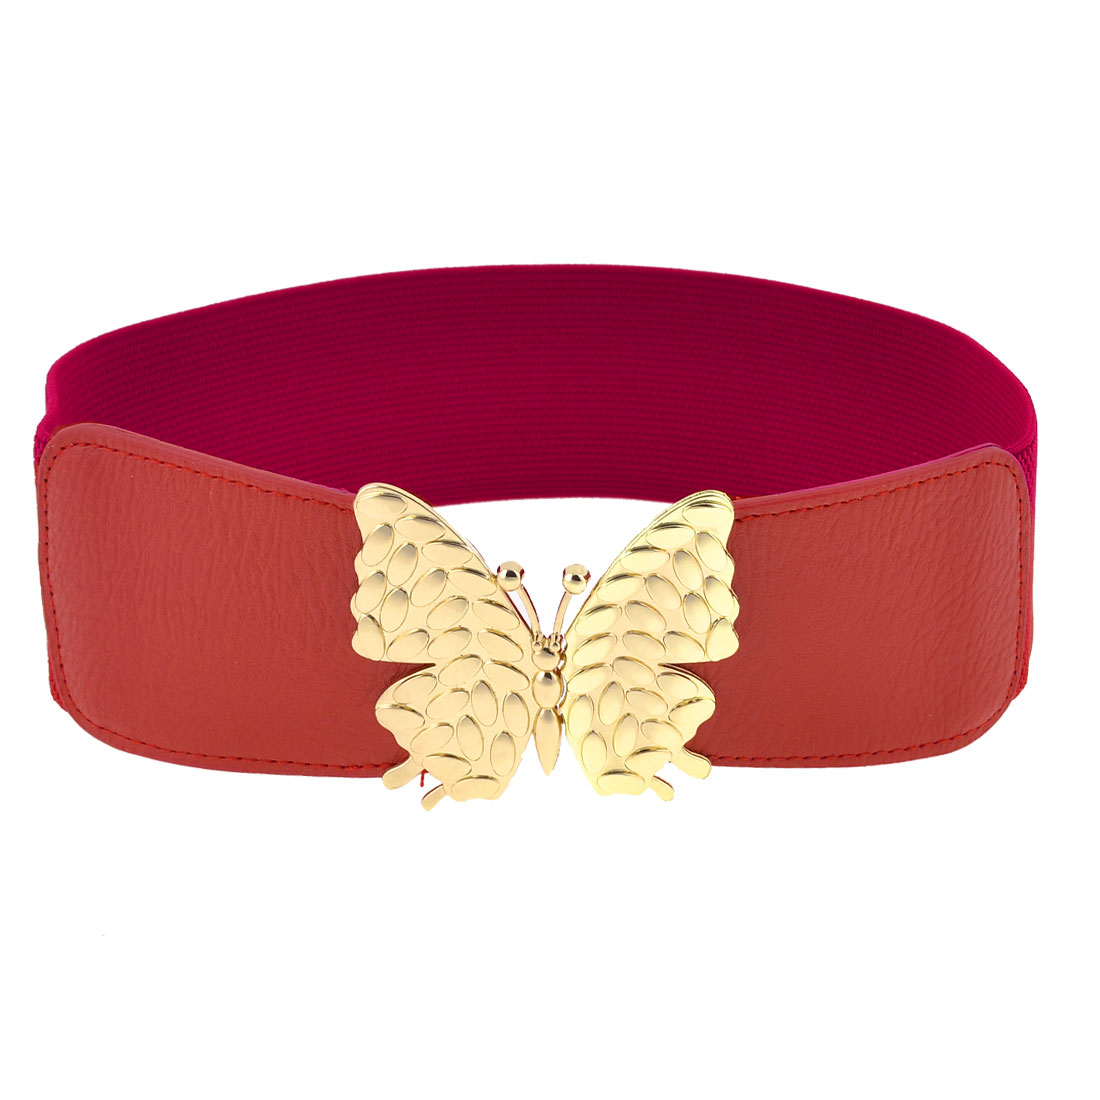 Butterfly Interlocking Buckle 6cm Wide Elastic Waist Belt Band Waistband Red